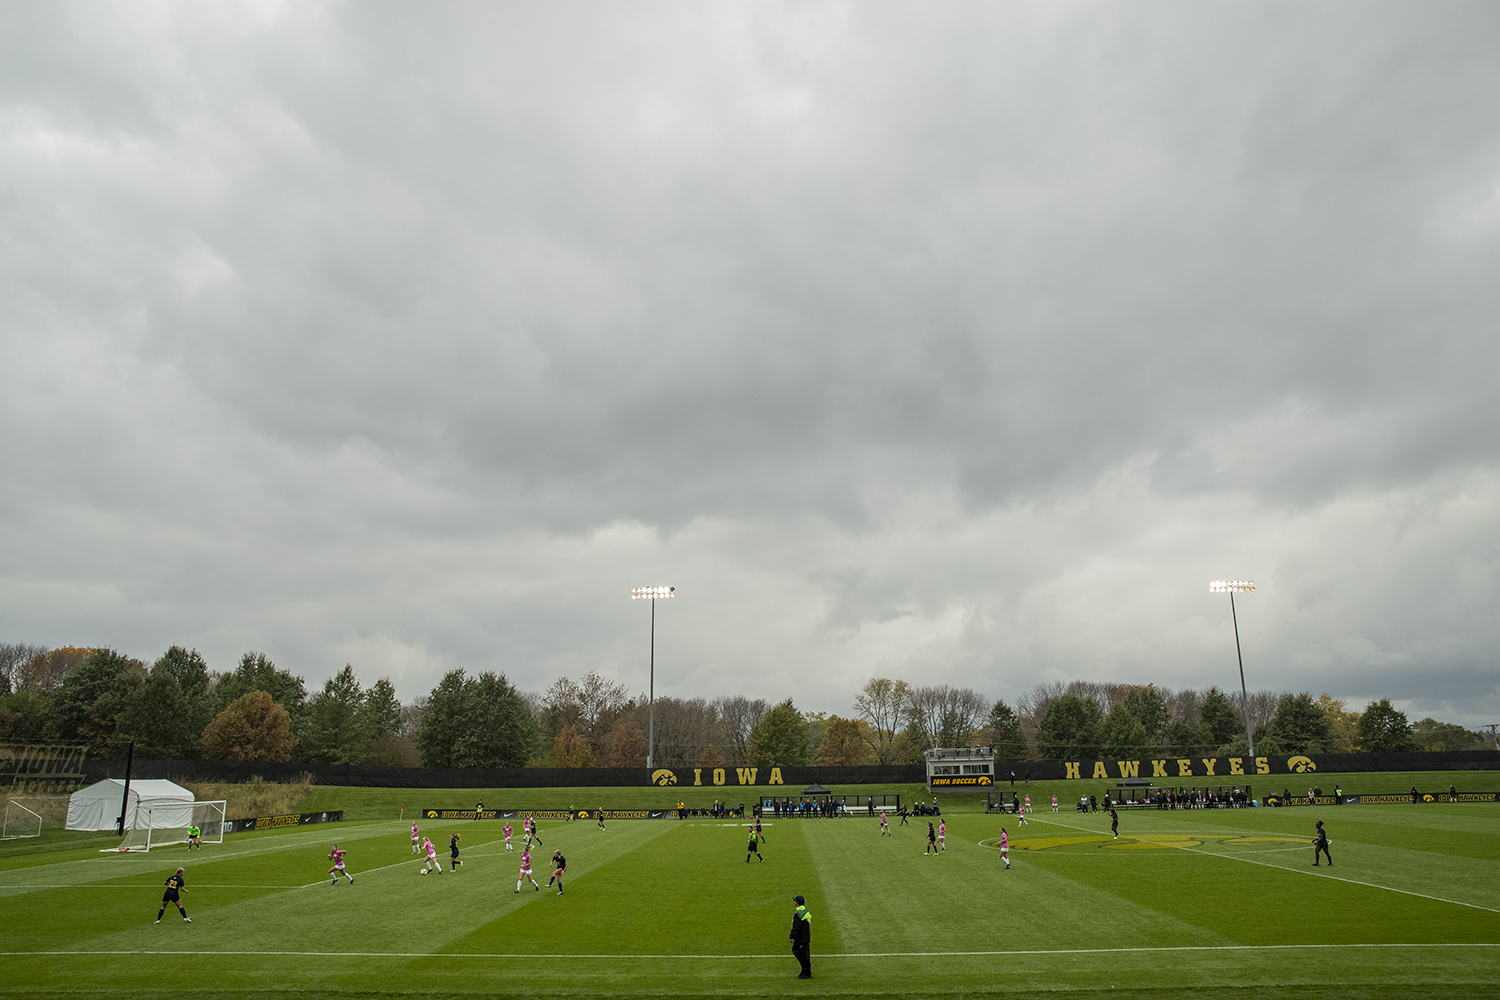 Iowa defends a counter during Iowa's game against Michigan at The Hawkeye Soccer Complex on Sunday, October 14, 2018. The Hawkeyes defeated the Wolverines 1-0.